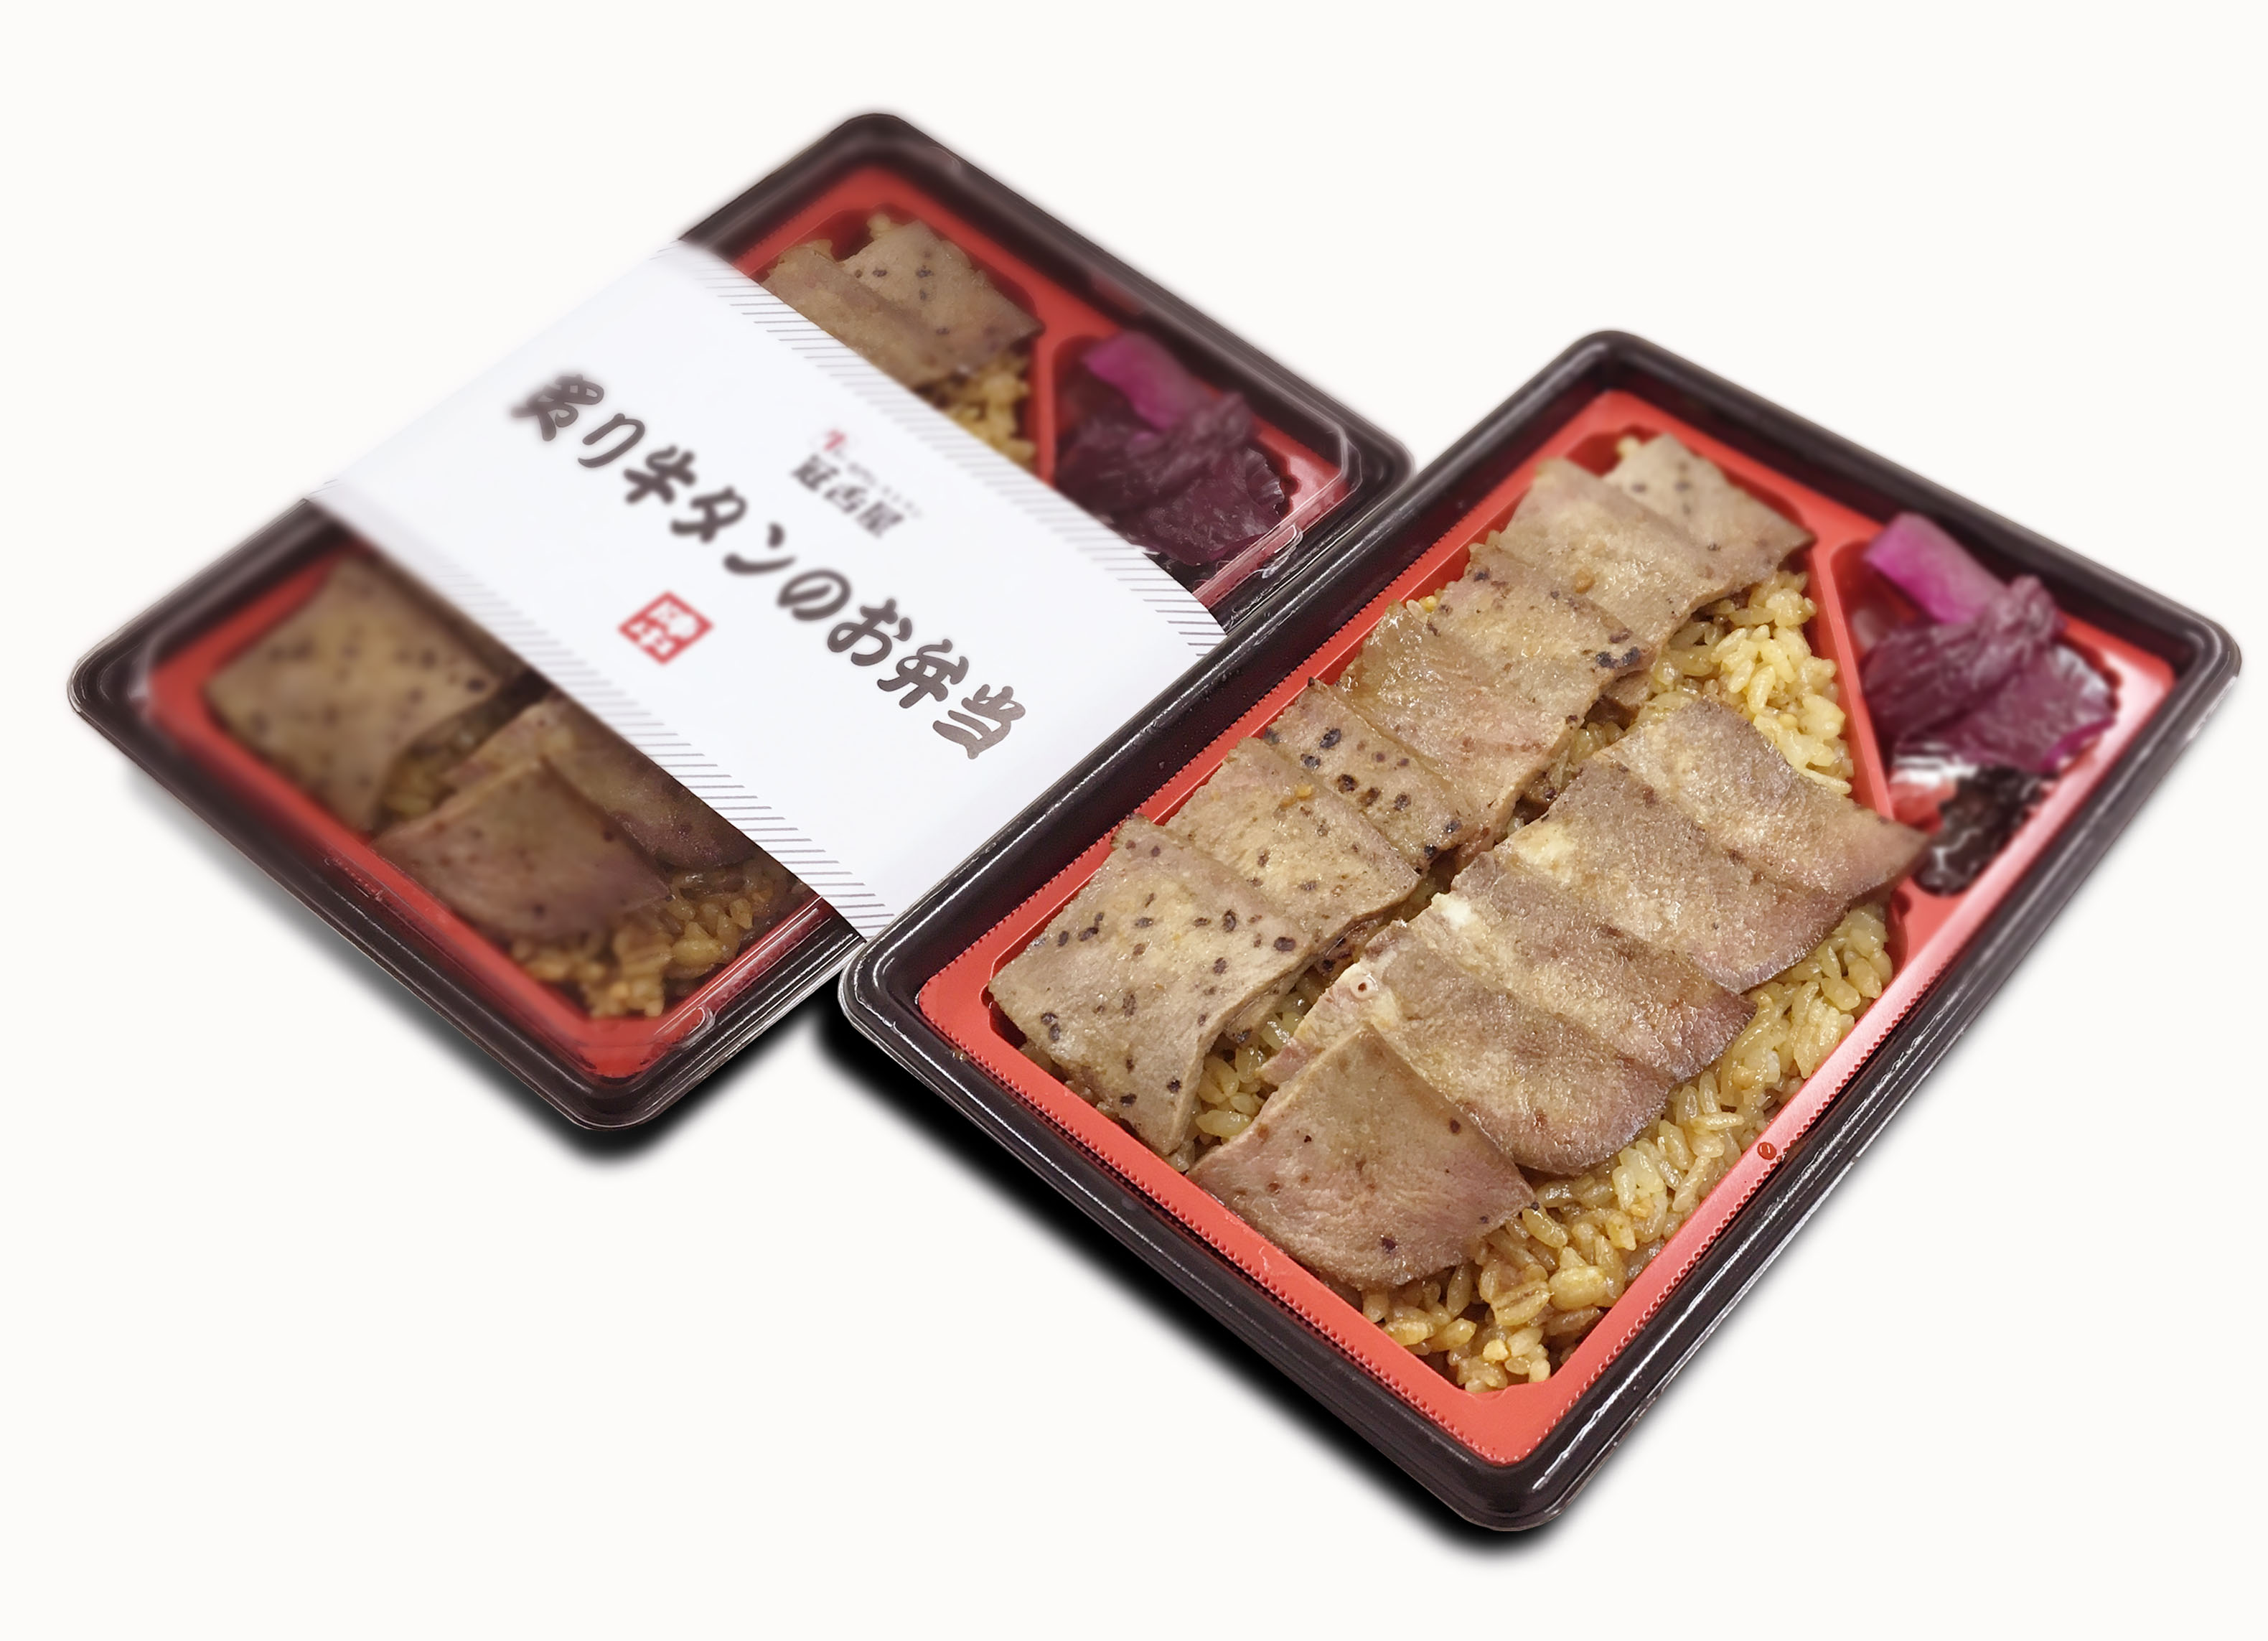 Broiled Ox Tongue Bento Box 1,000 (incl. tax)